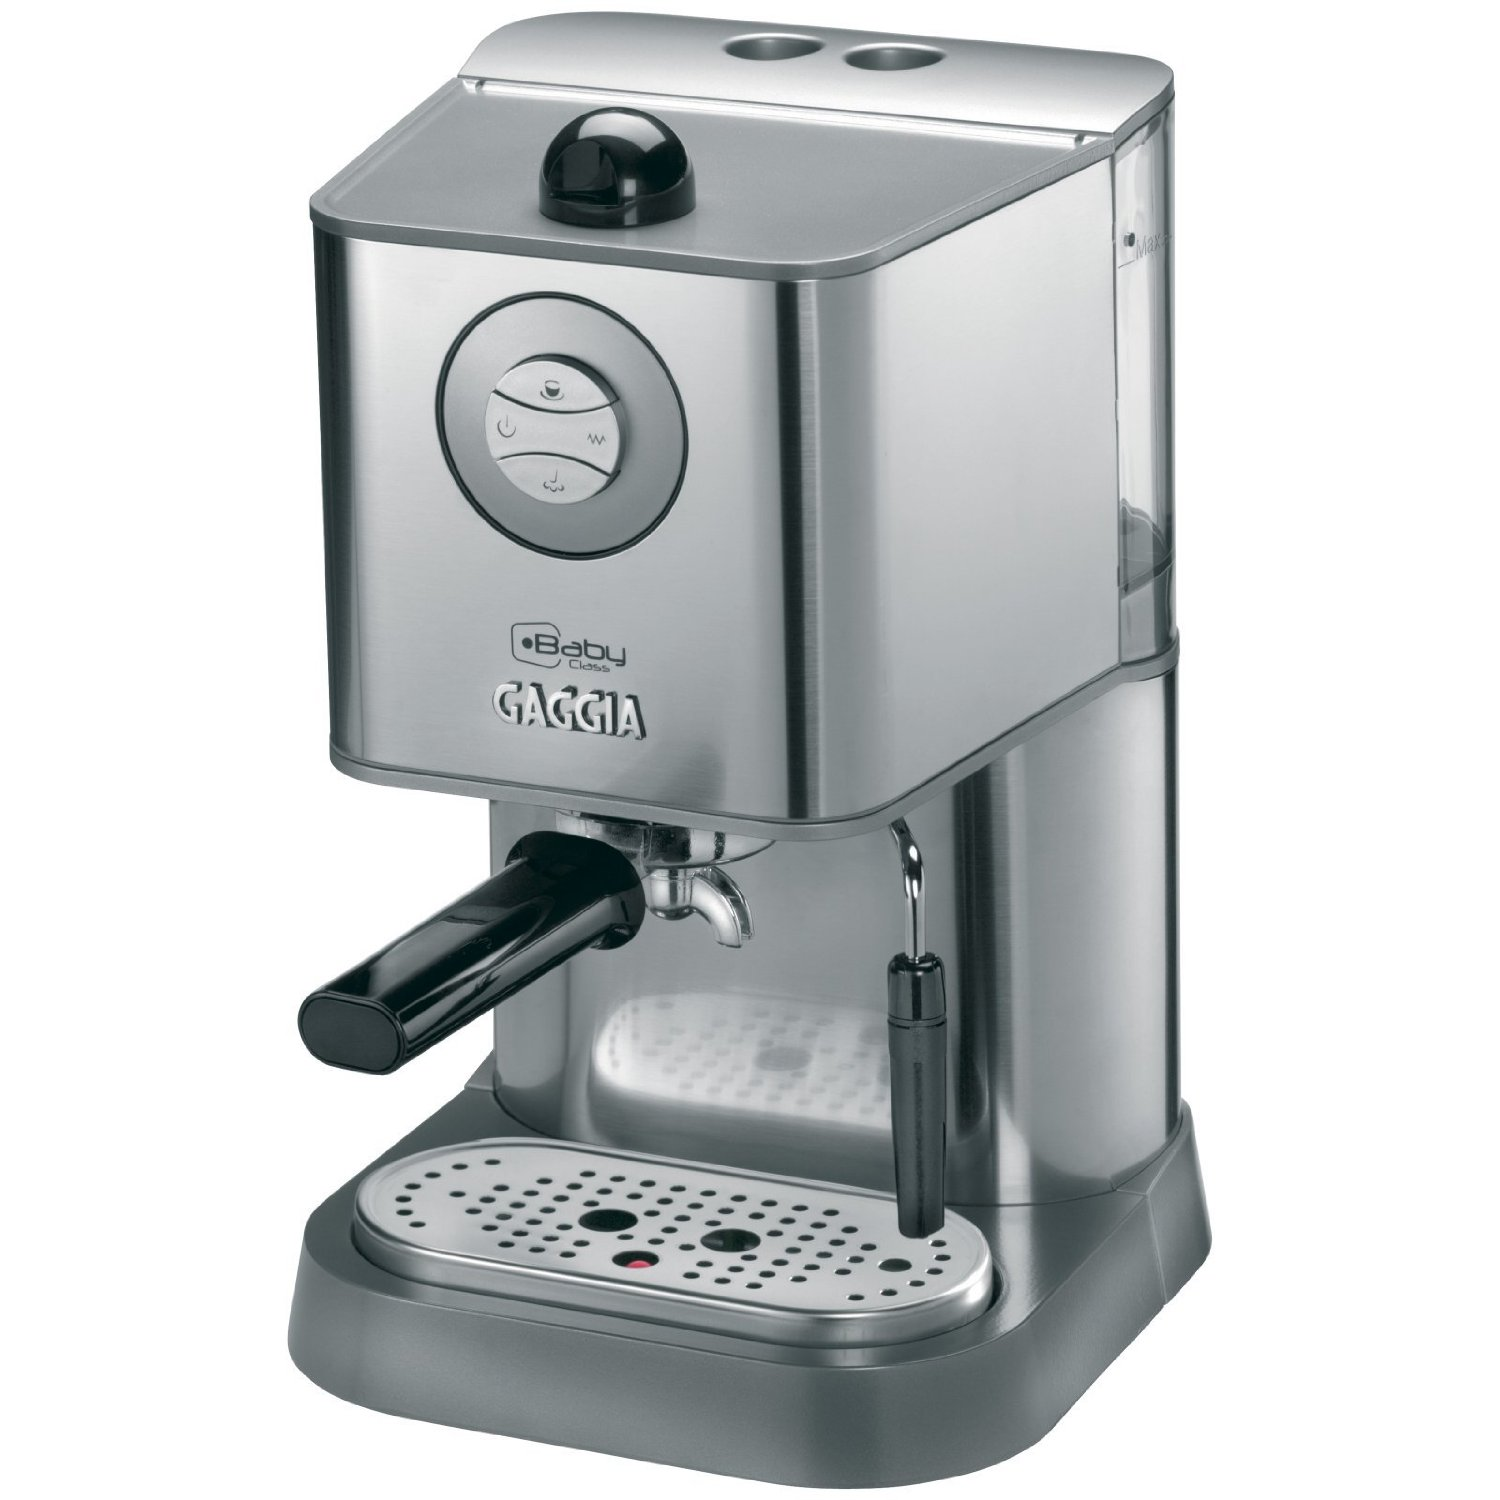 Gaggia Baby Class RI8157/40 Coffee Pod Machine